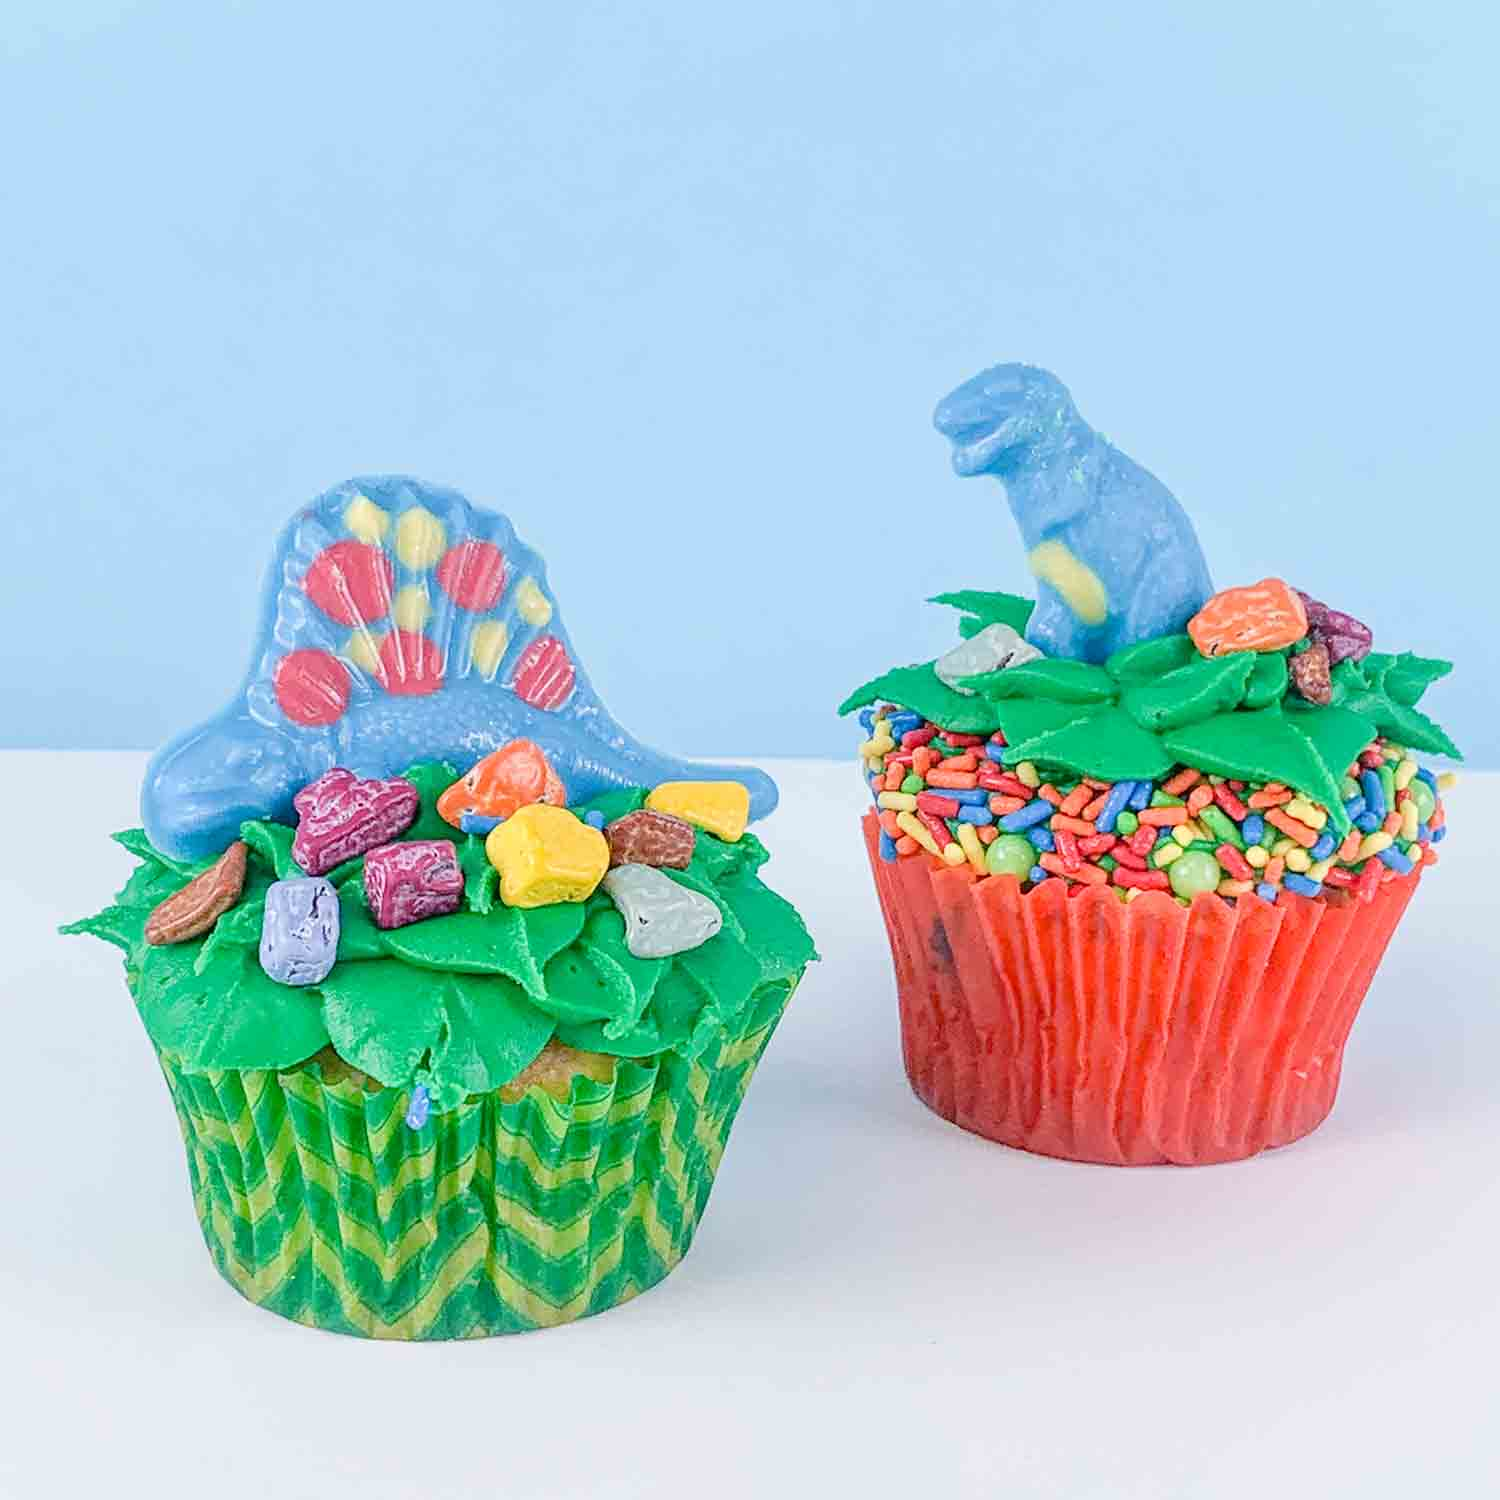 Bake at Home Dinosaur Cupcake Kit